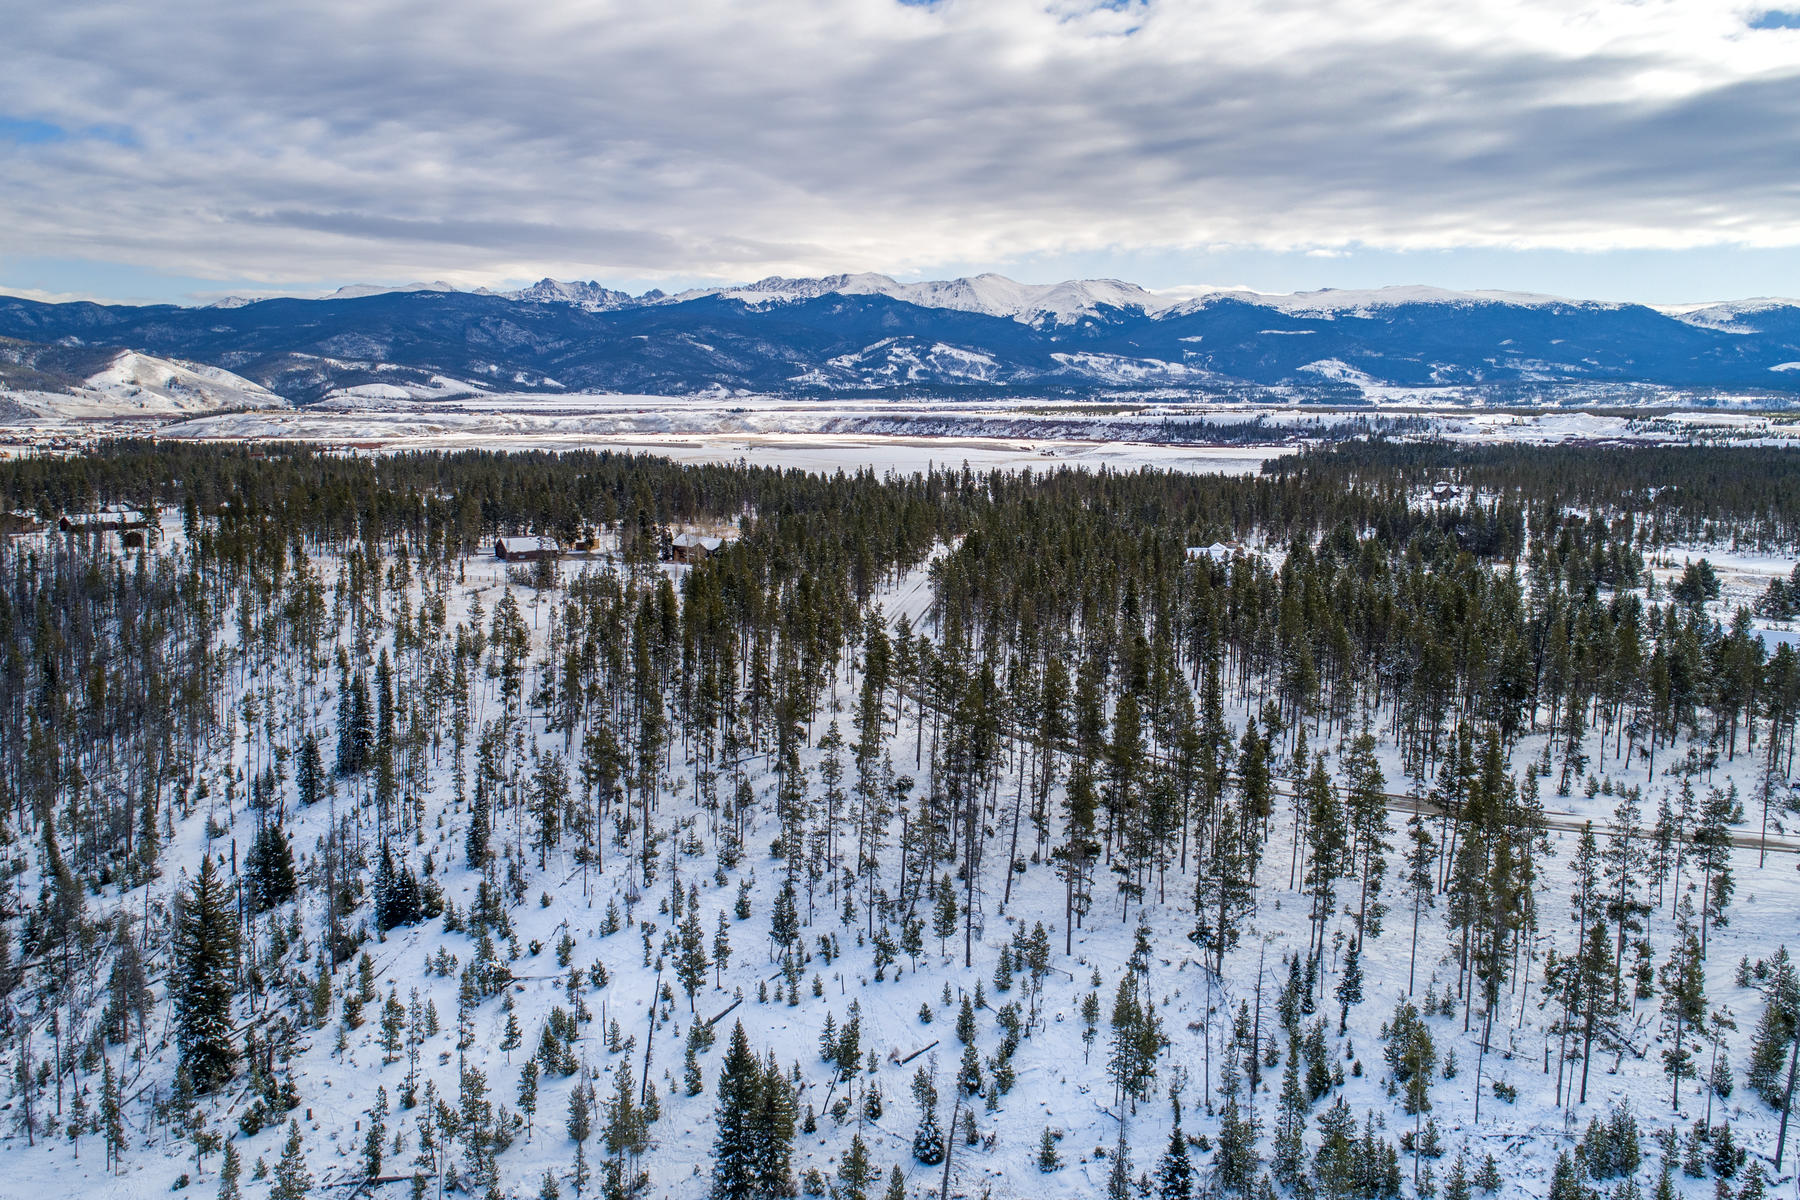 Land for Sale at Lot 22 in Stagecoach Meadows 903 GCR 5171 Fraser, Colorado 80442 United States